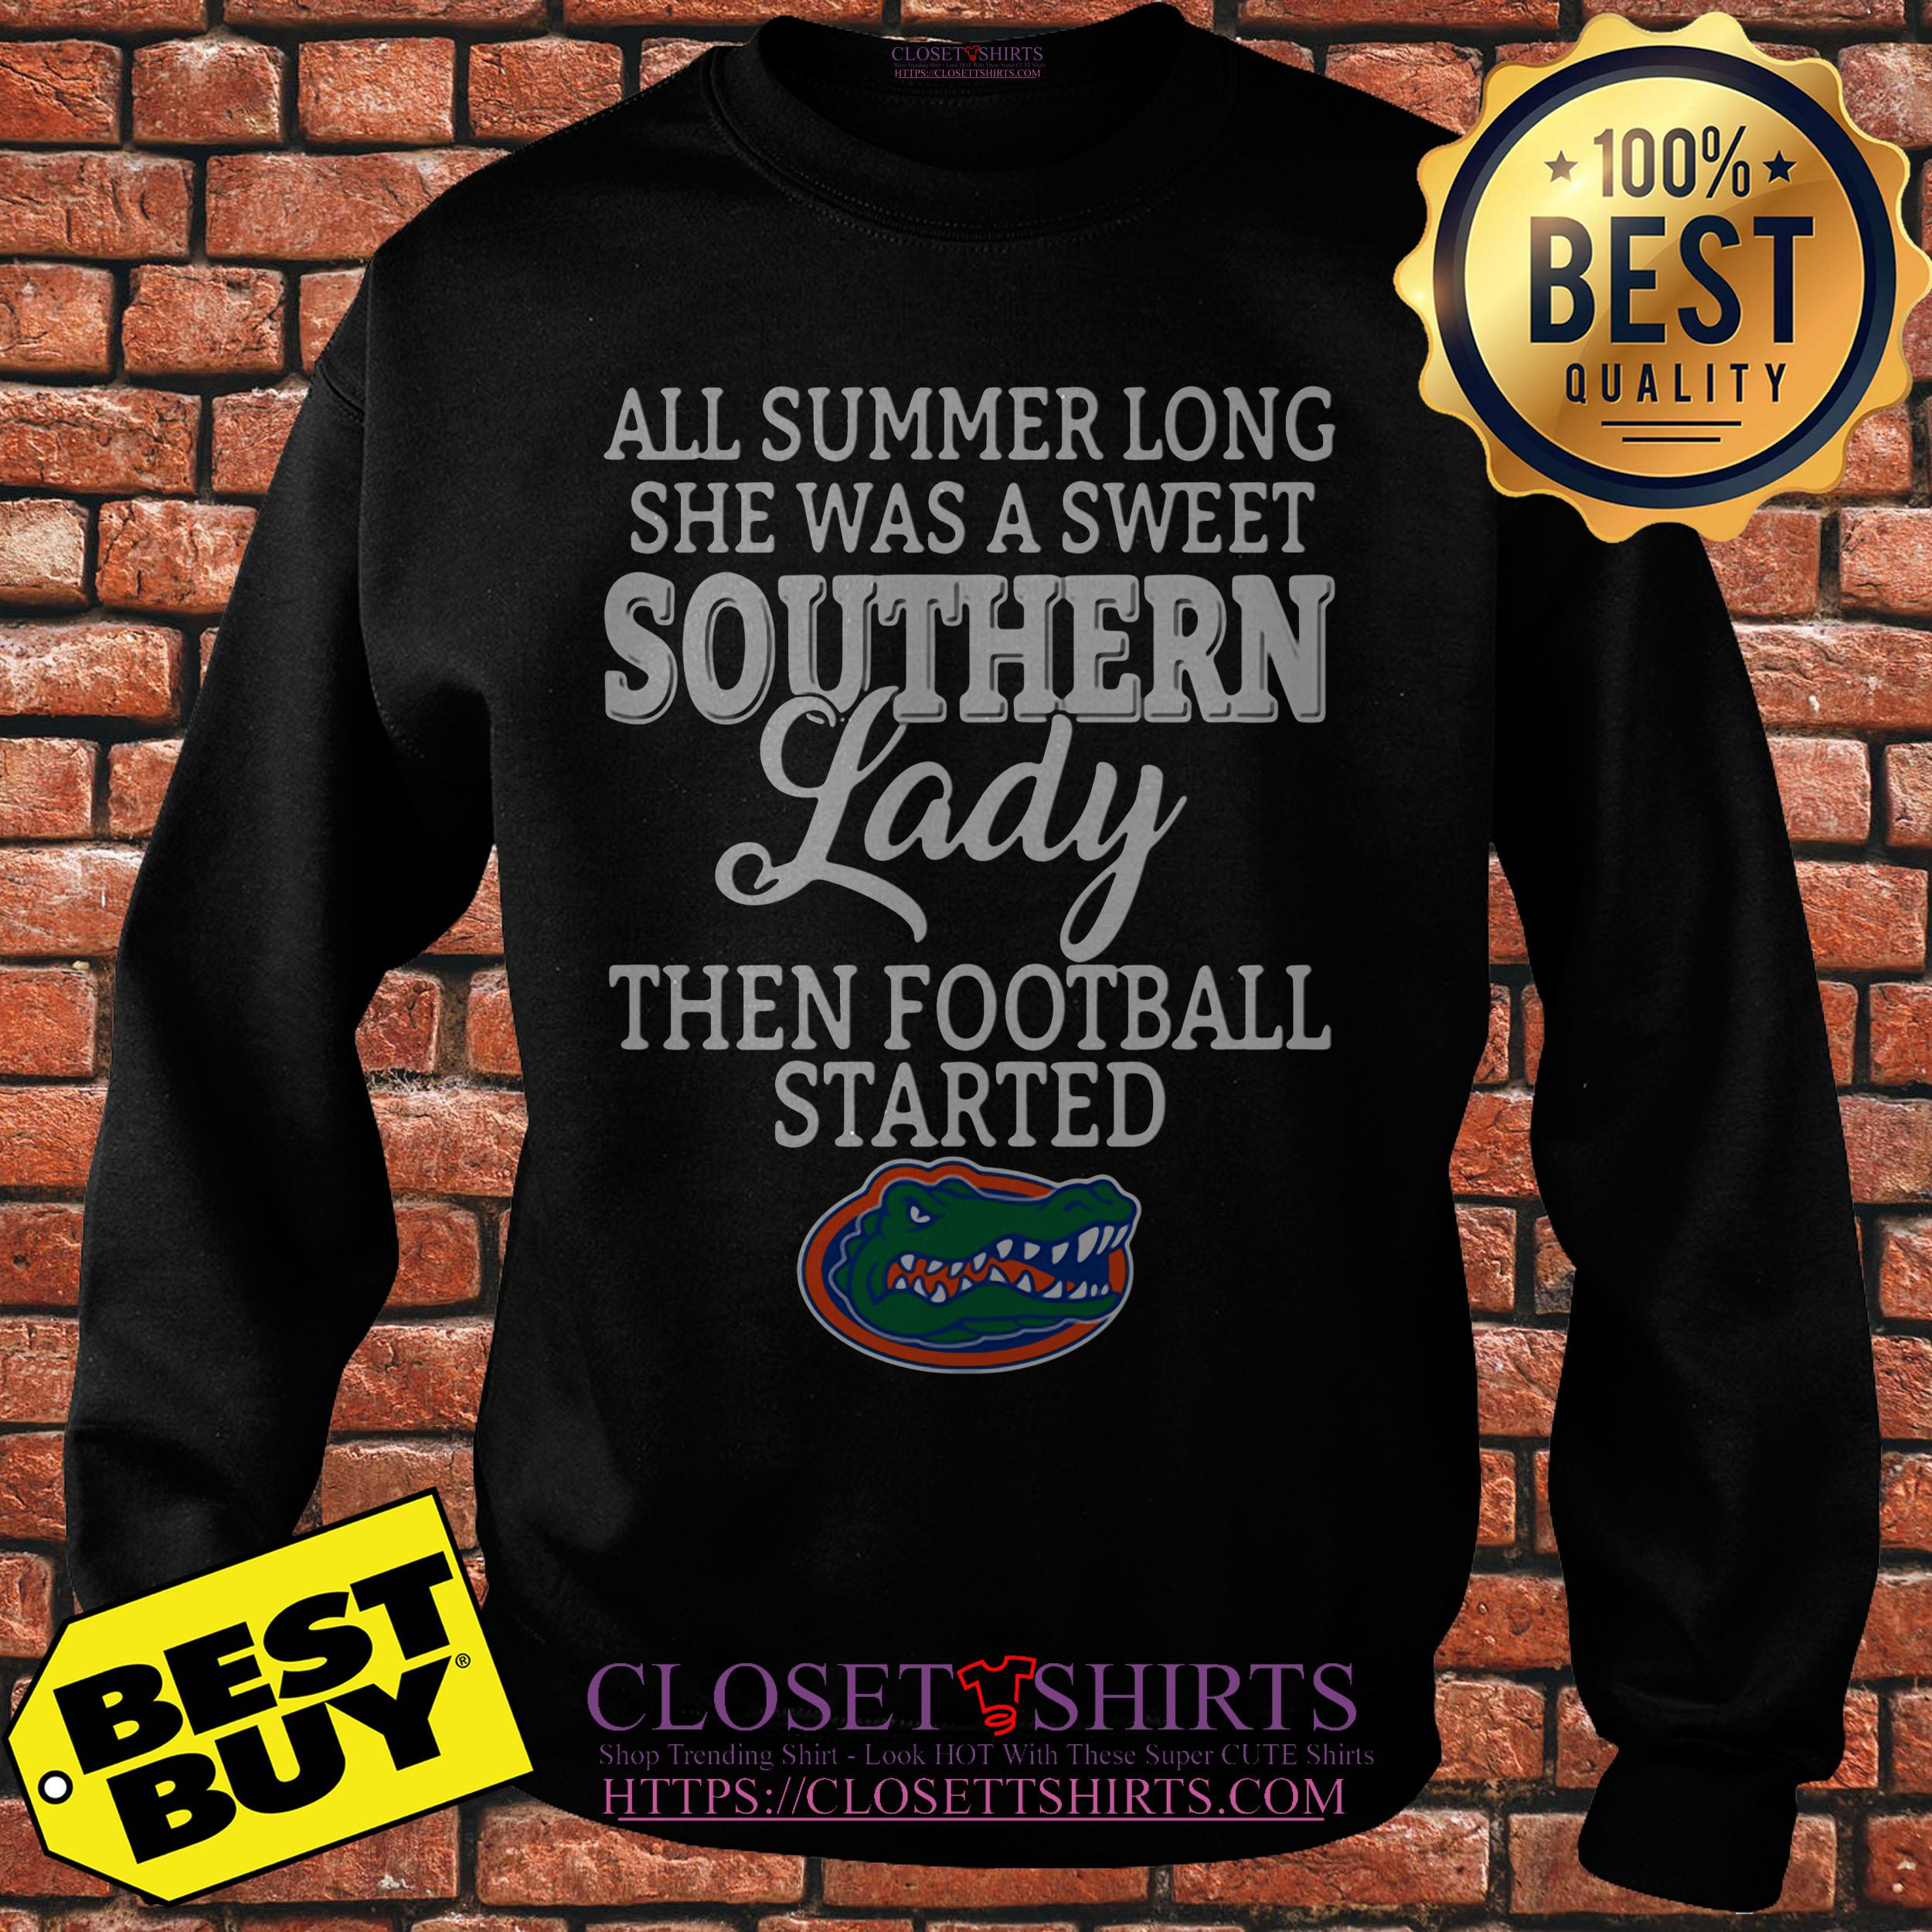 Floria Gators All Summer Long She Was A Sweet Southern Lady Then Football Started Sweatshirt